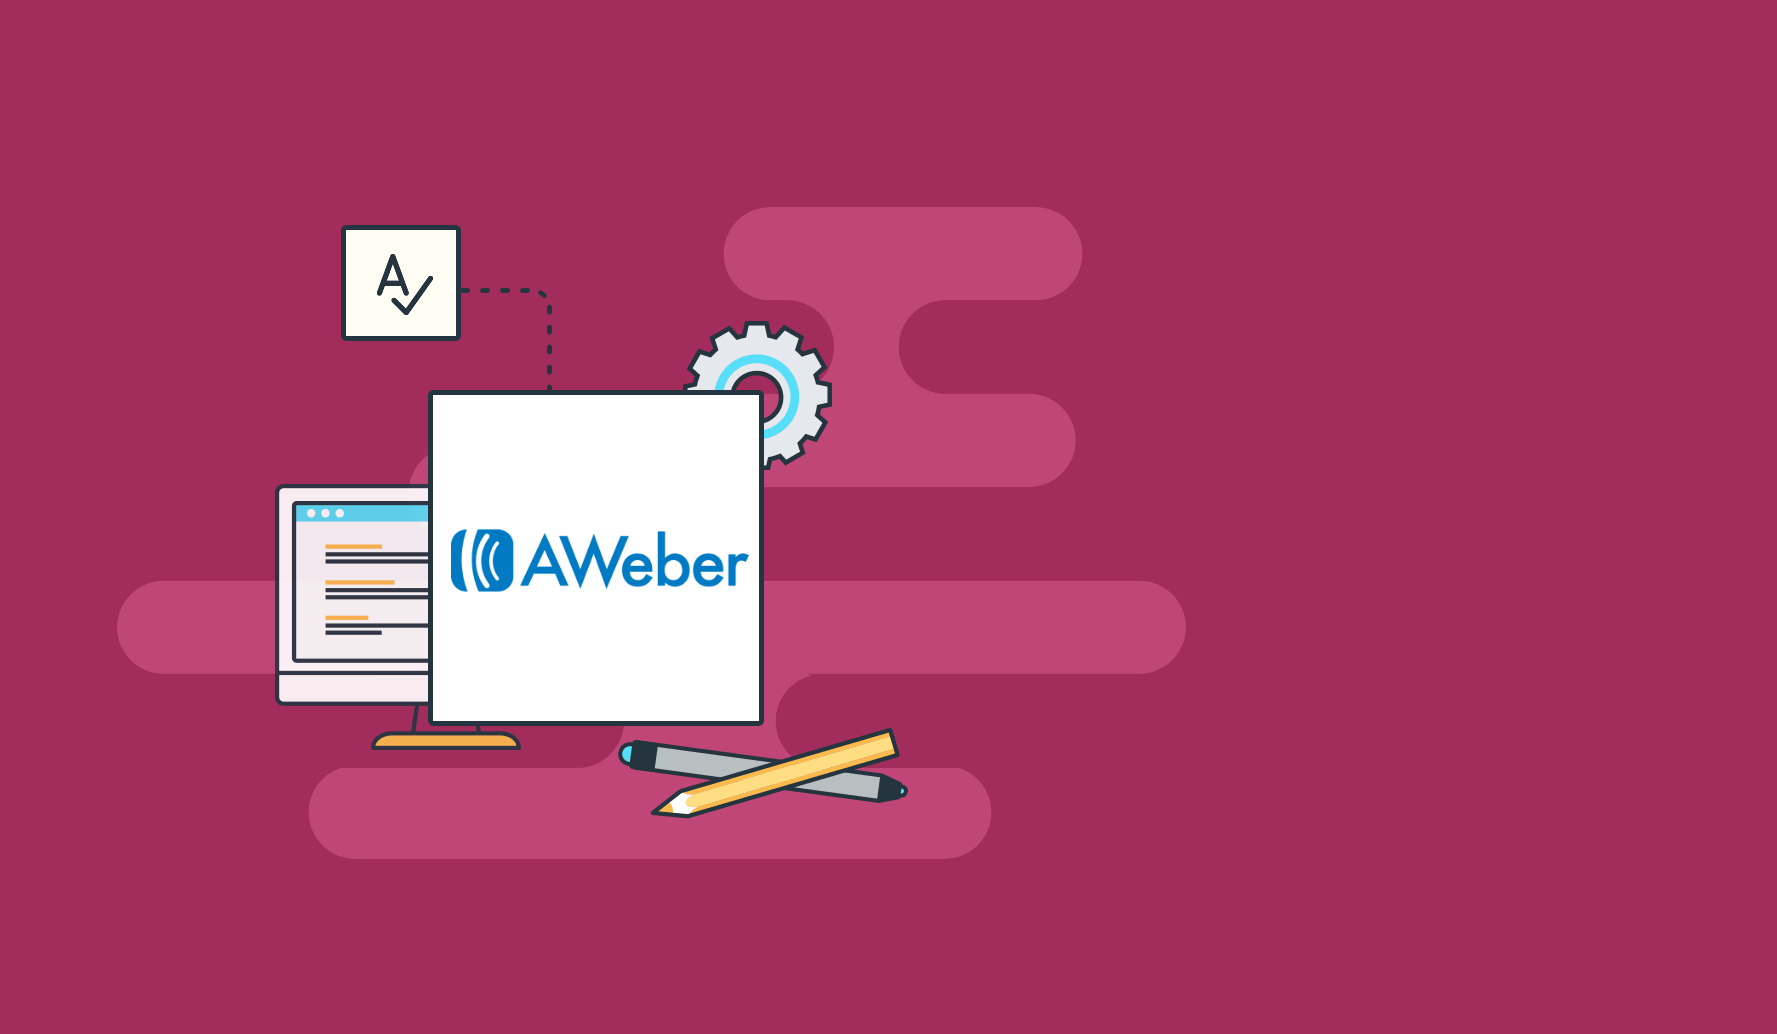 Buy Email Marketing Aweber Verified Promo Code March 2020